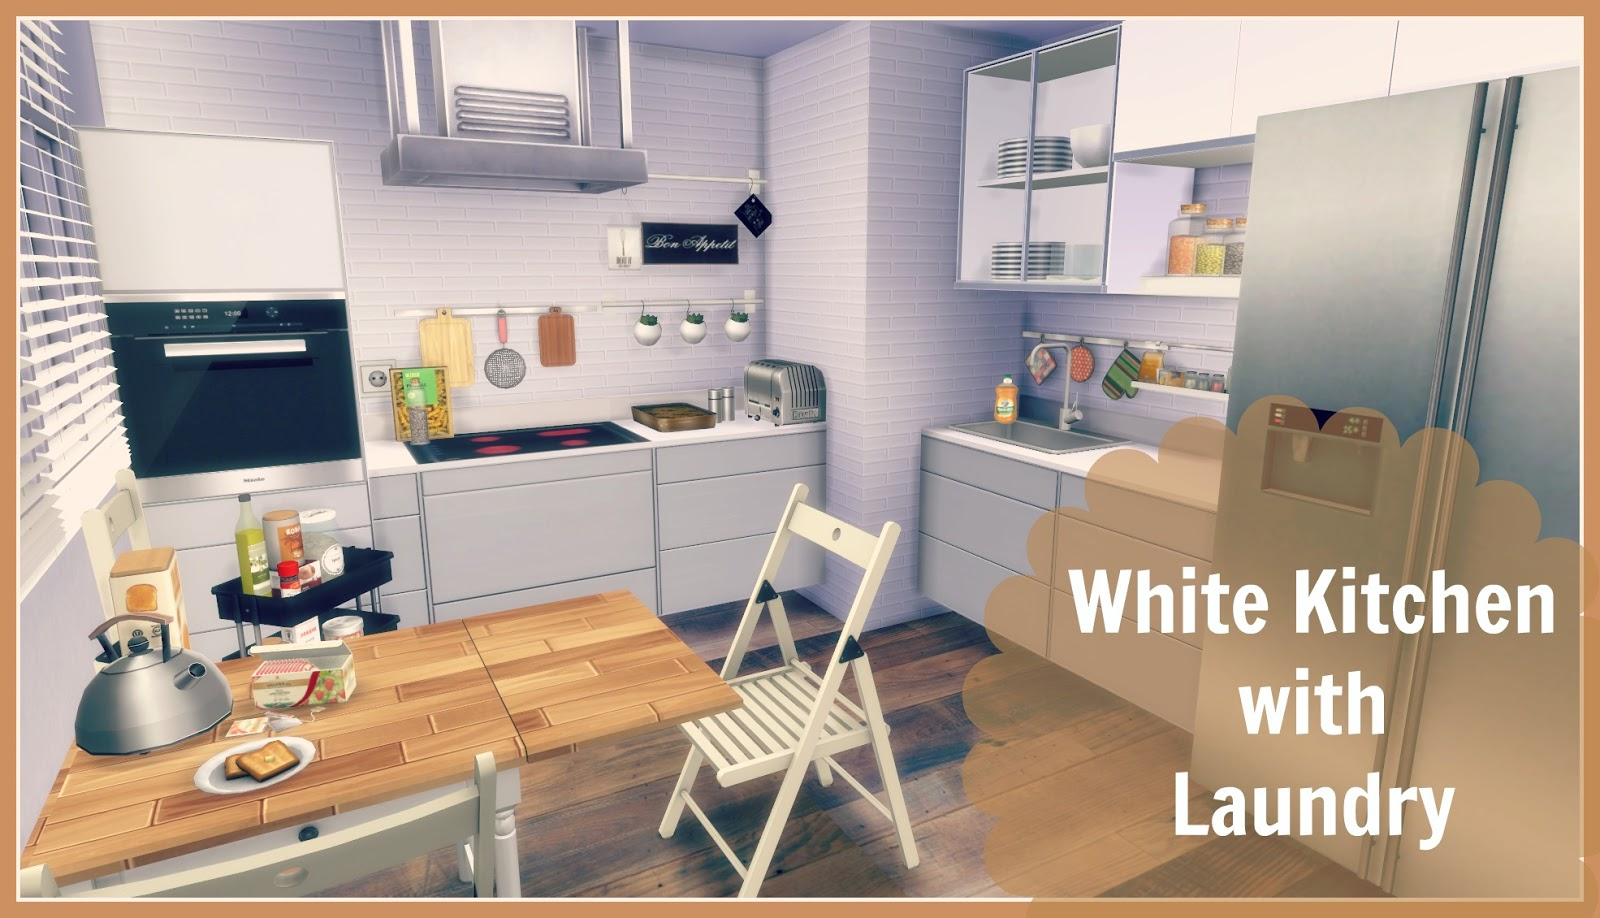 Sims 4 white kitchen with laundry dinha for Sims 3 kitchen designs